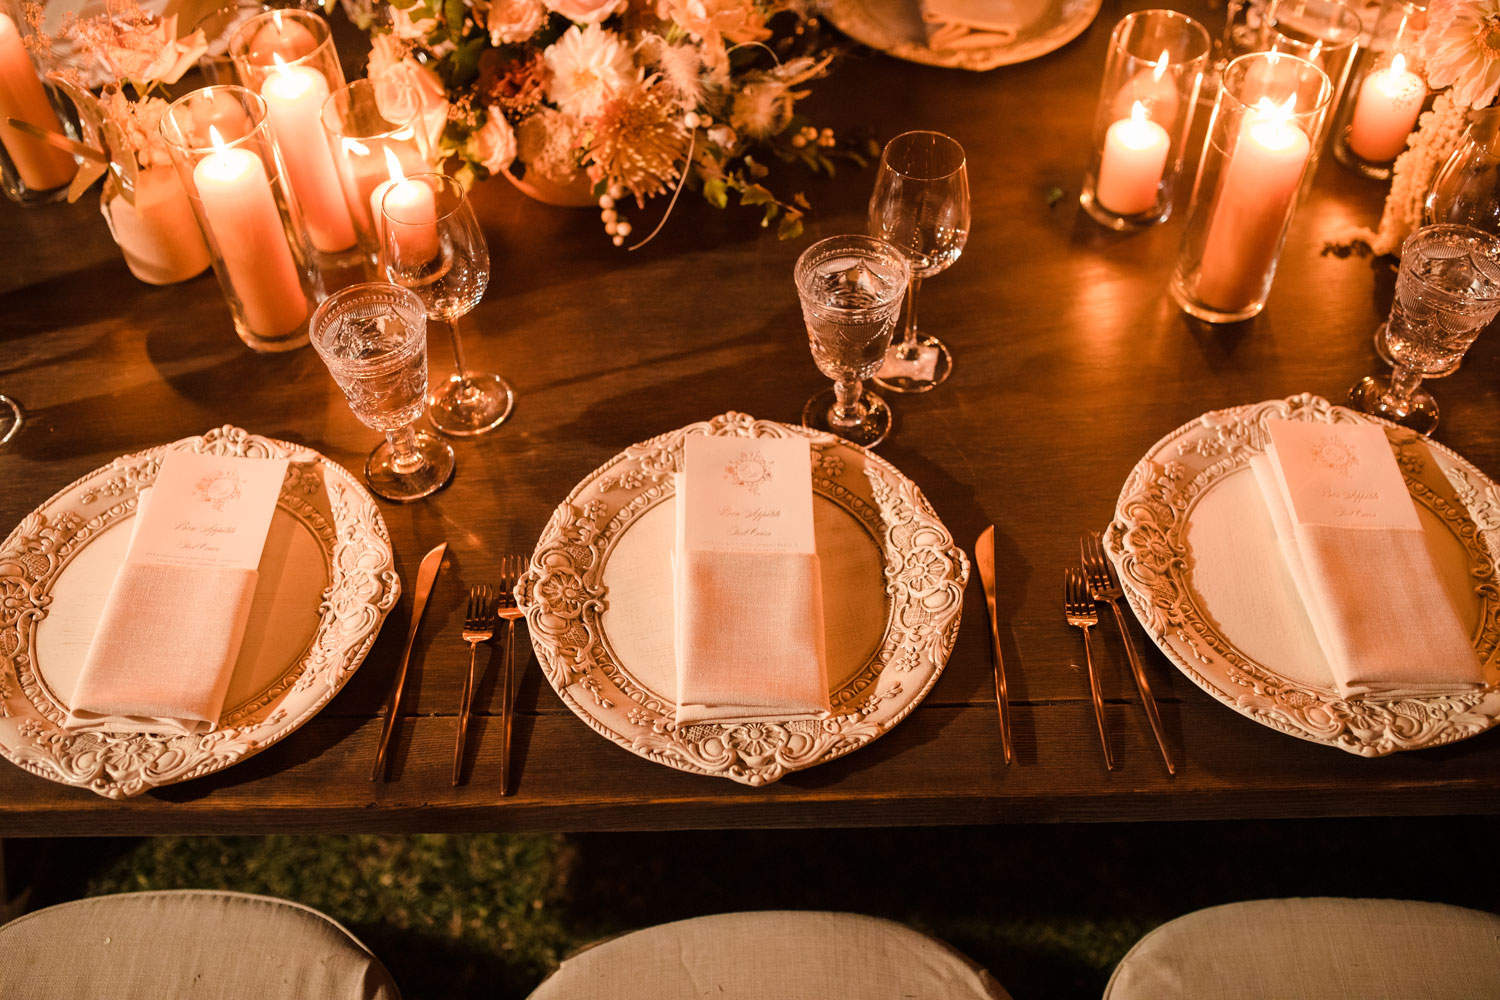 Top Chef Marcel Vigneron and Lauren Rae Levy real wedding planned by Tessa Lyn Events wedding reception table